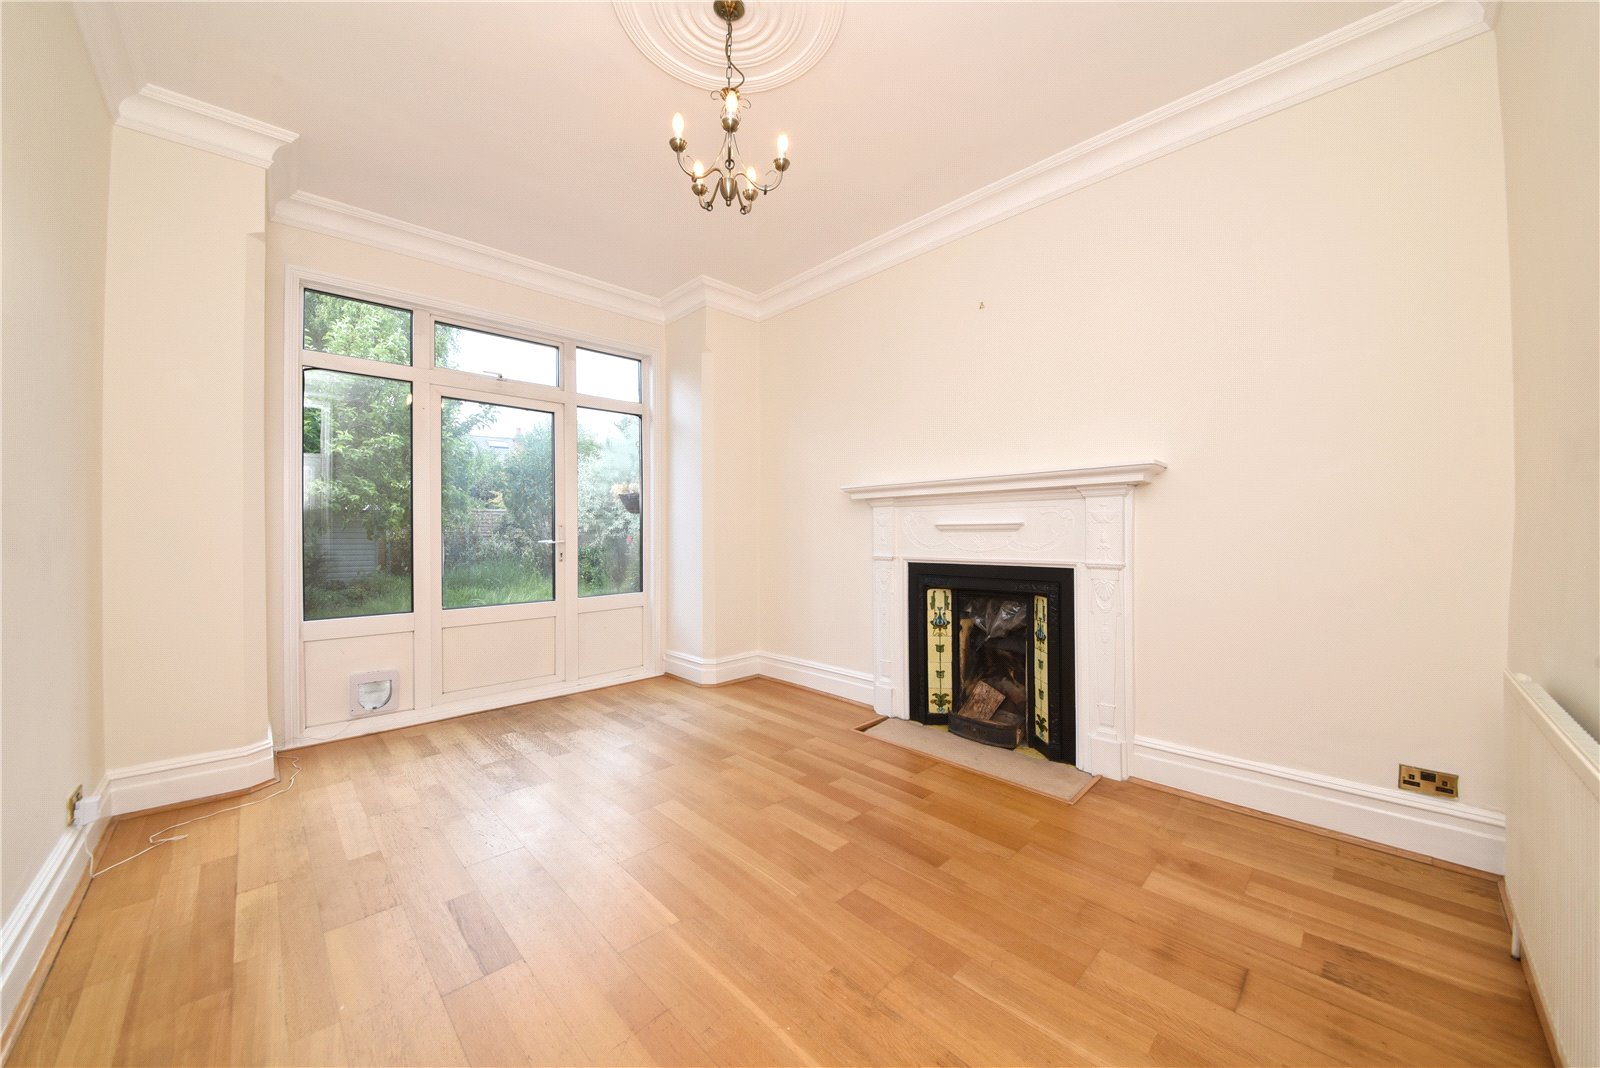 4 bed house for sale in Finchley, N3 2AR 4